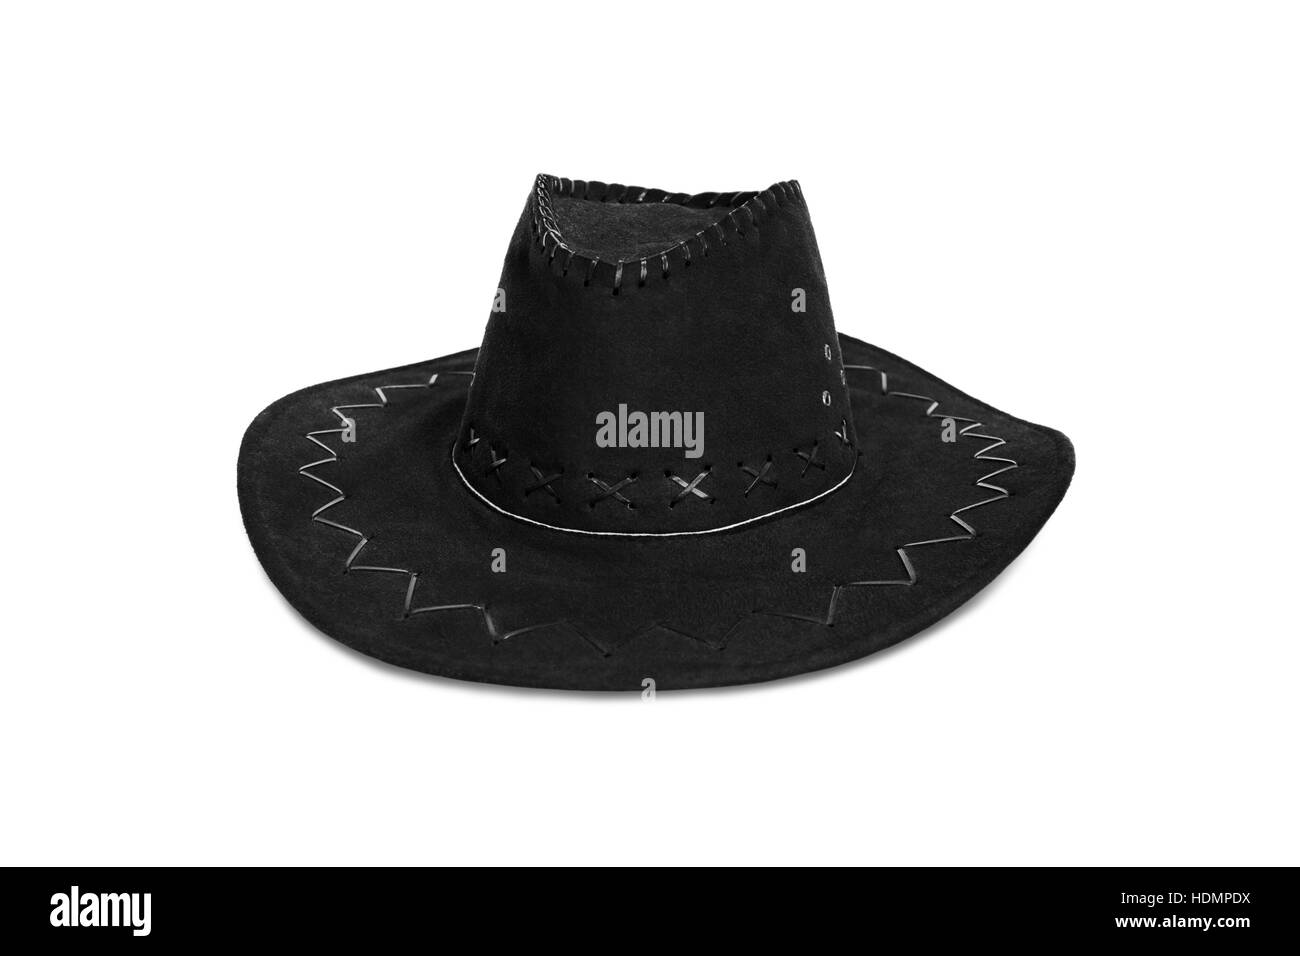 b9a0ff54c20 black cowboy hat isolated on white background - Stock Image